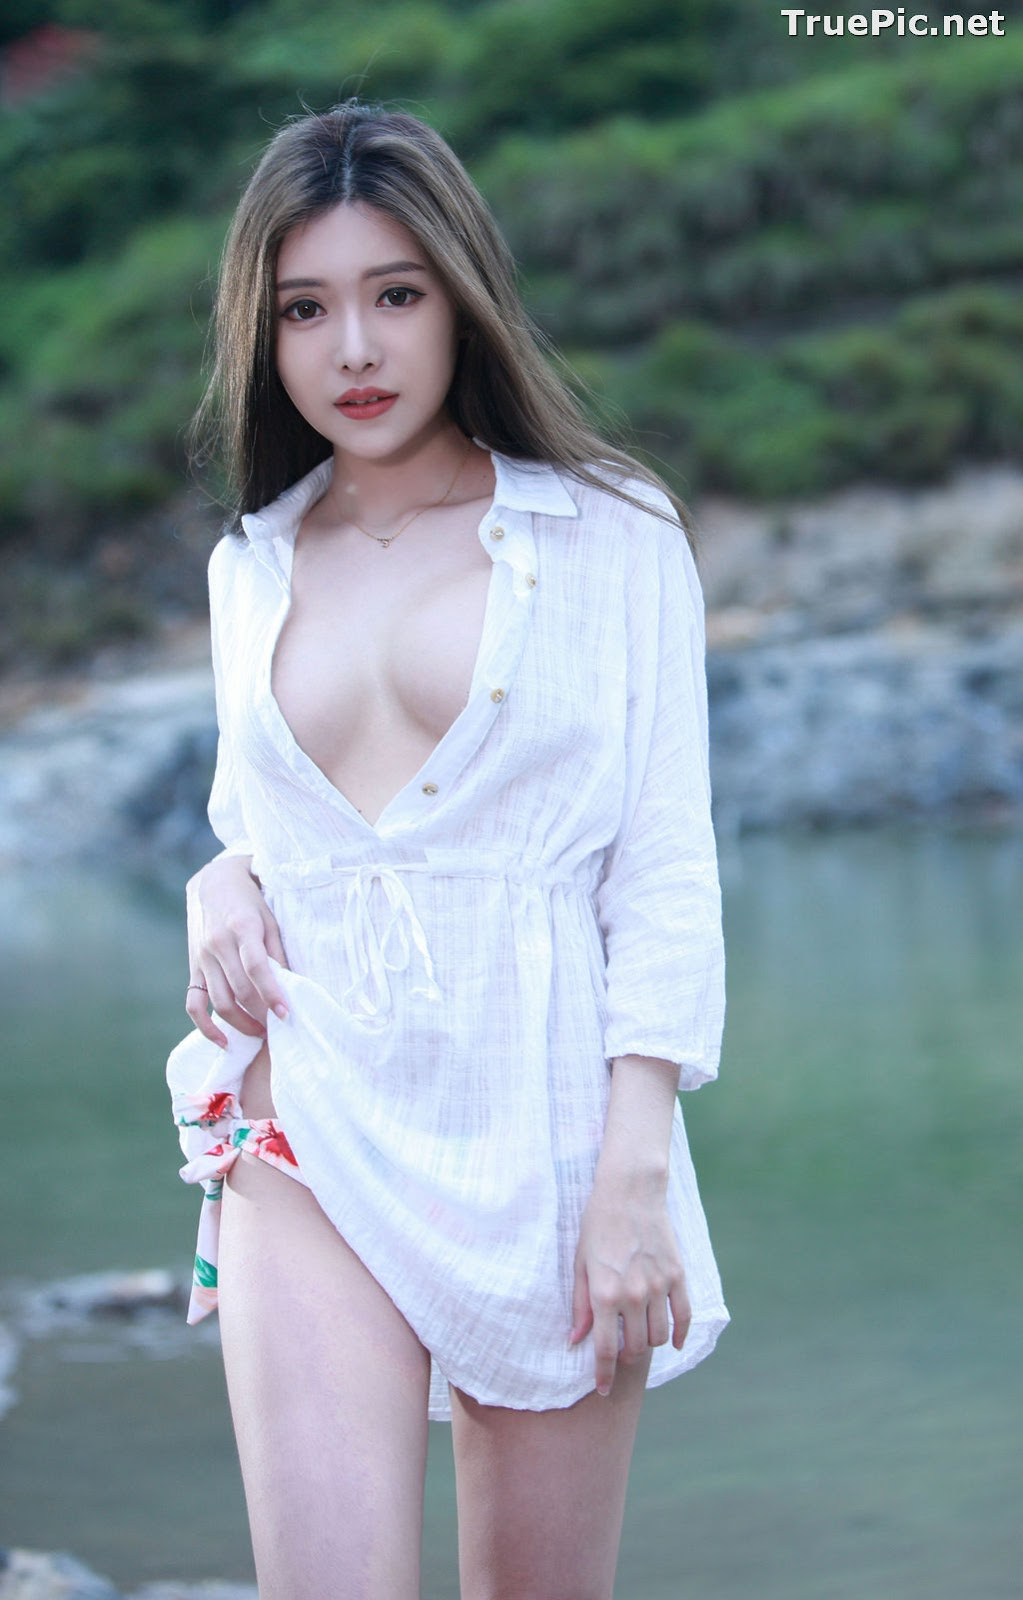 Image Taiwanese Model - 莊舒潔 - Sexy and Beautiful Big Eyes Girl- TruePic.net - Picture-8